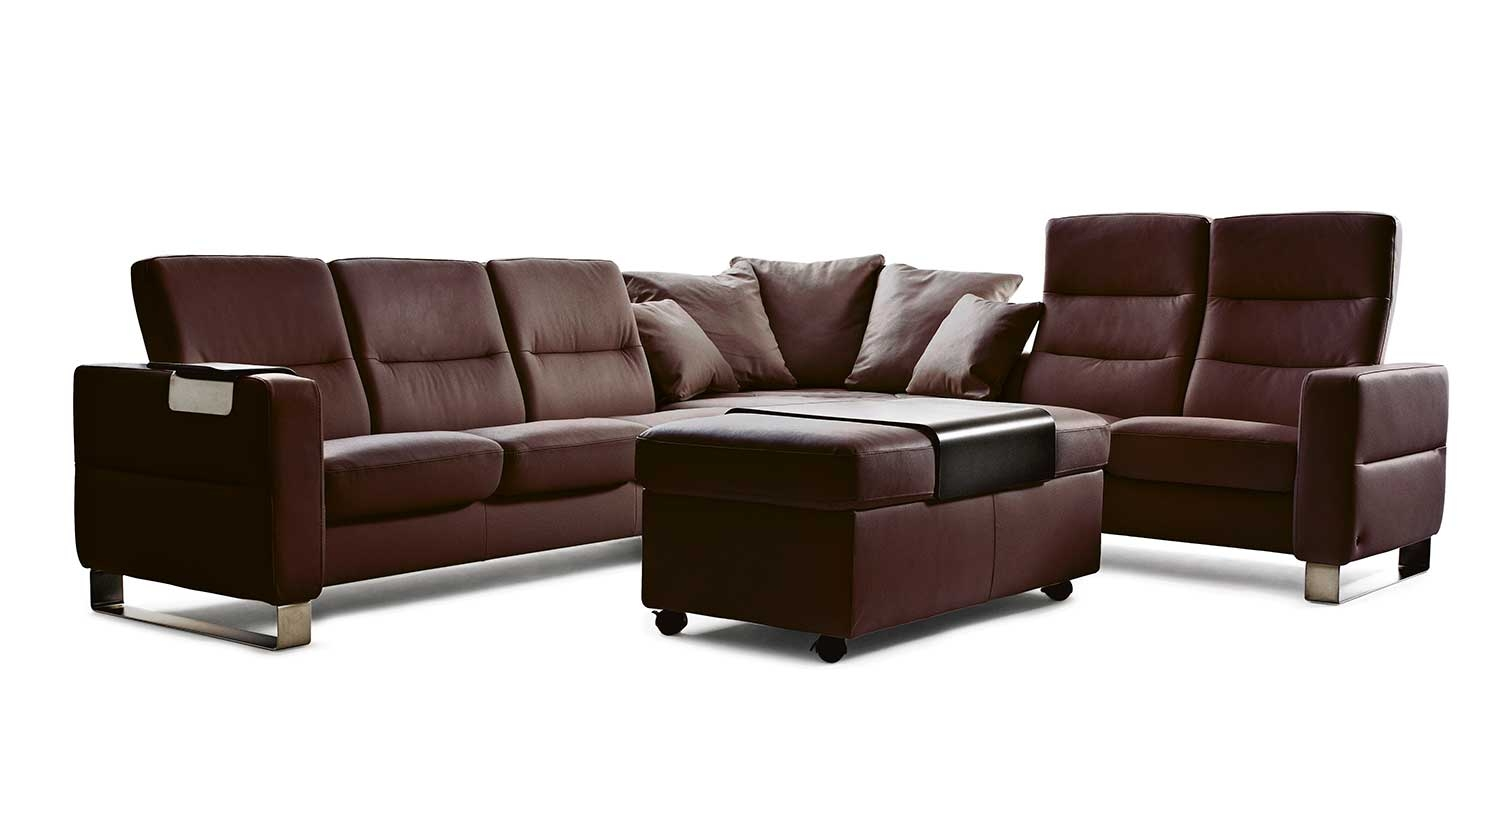 Circle Furniture Wave Stressless Sectional Ekornes Sofas Pertaining To Ekornes Sectional Sofa (#3 of 12)